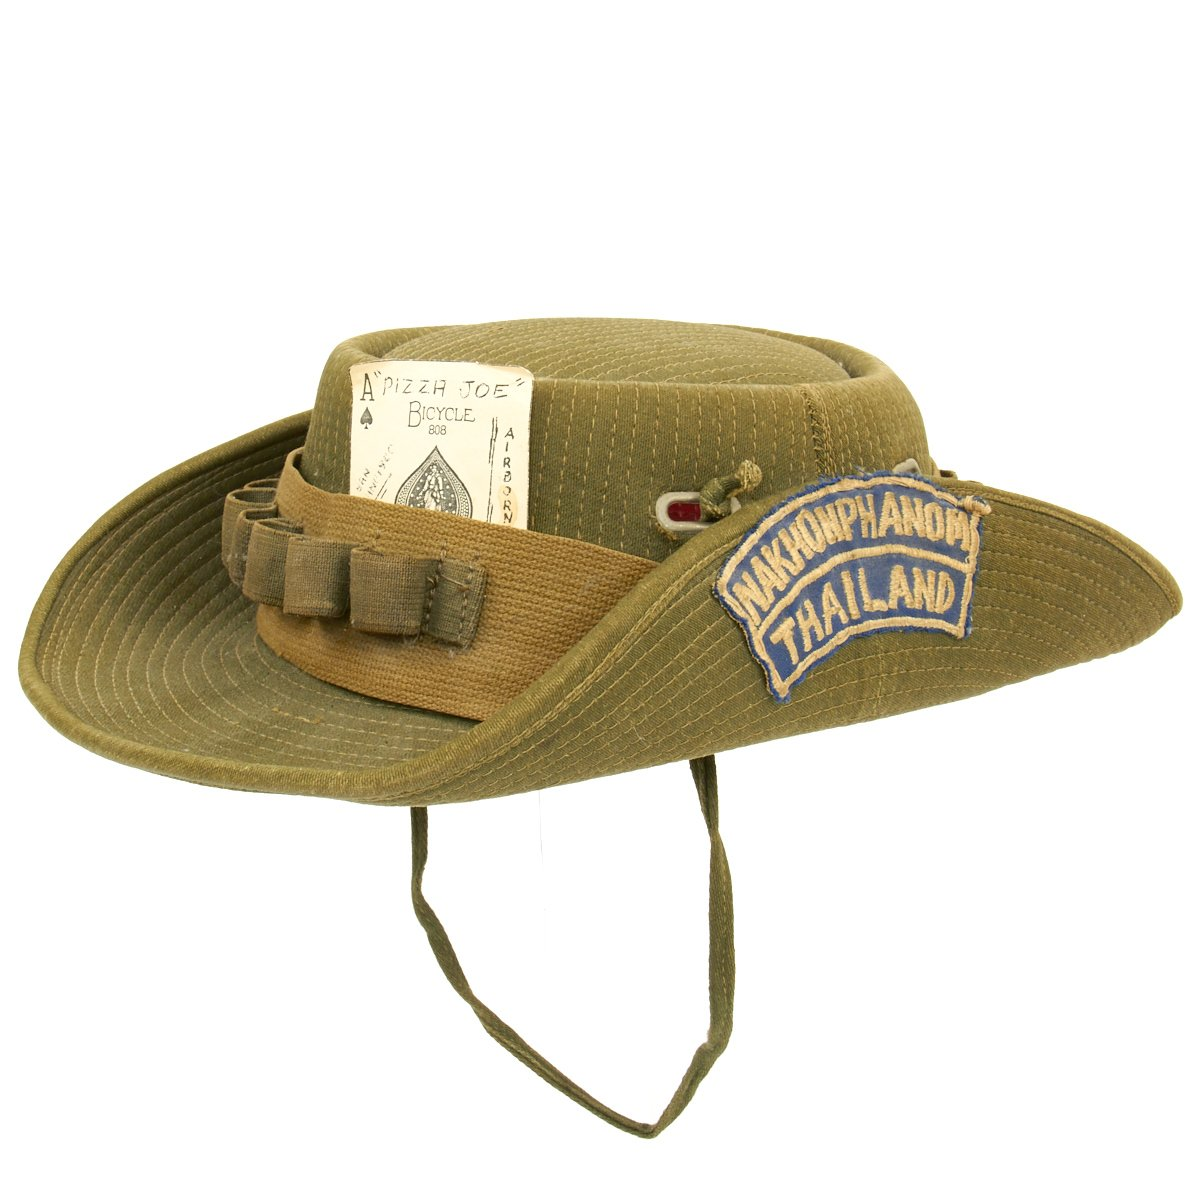 8a8b2eca100 Tap to expand · Next · Original U.S. Vietnam War Slouch Boonie Hat with  Rocker Patch - Nakhon Phanom Thailand